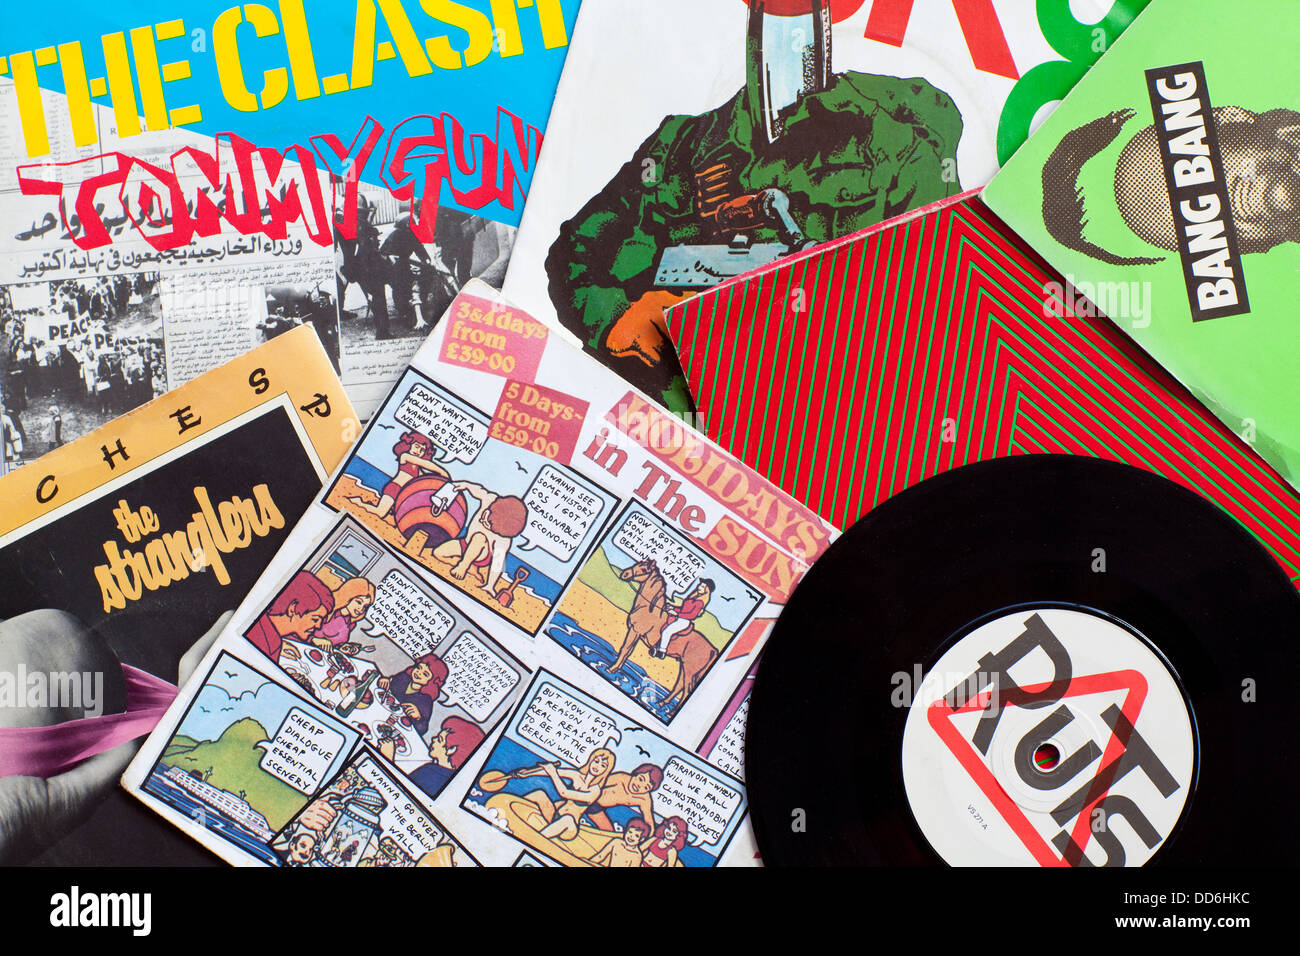 Collage of punk records - Stock Image